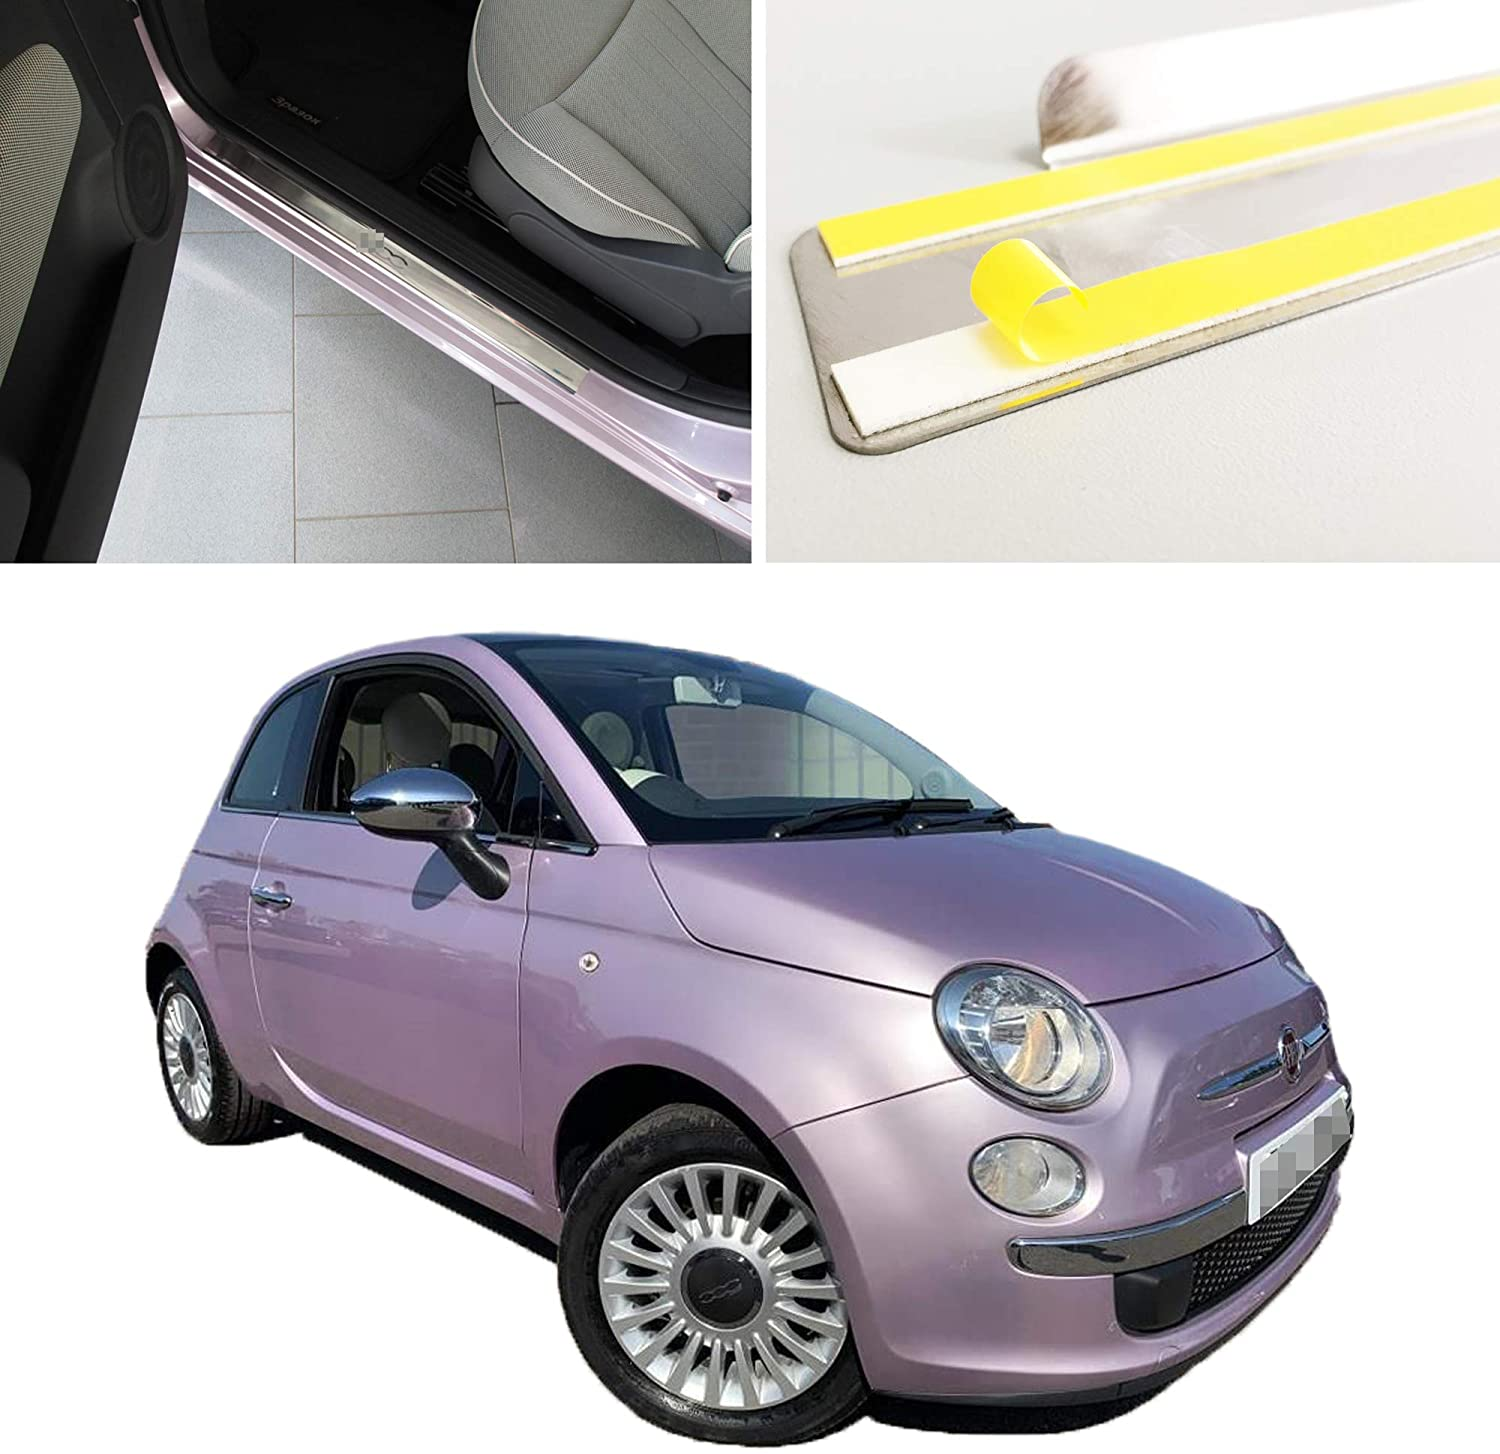 Stainless Steel Outside Fit Door Sill Scuff Plate Guard 2pcs Sills Protector Trim for Fiat 500 2007-2019